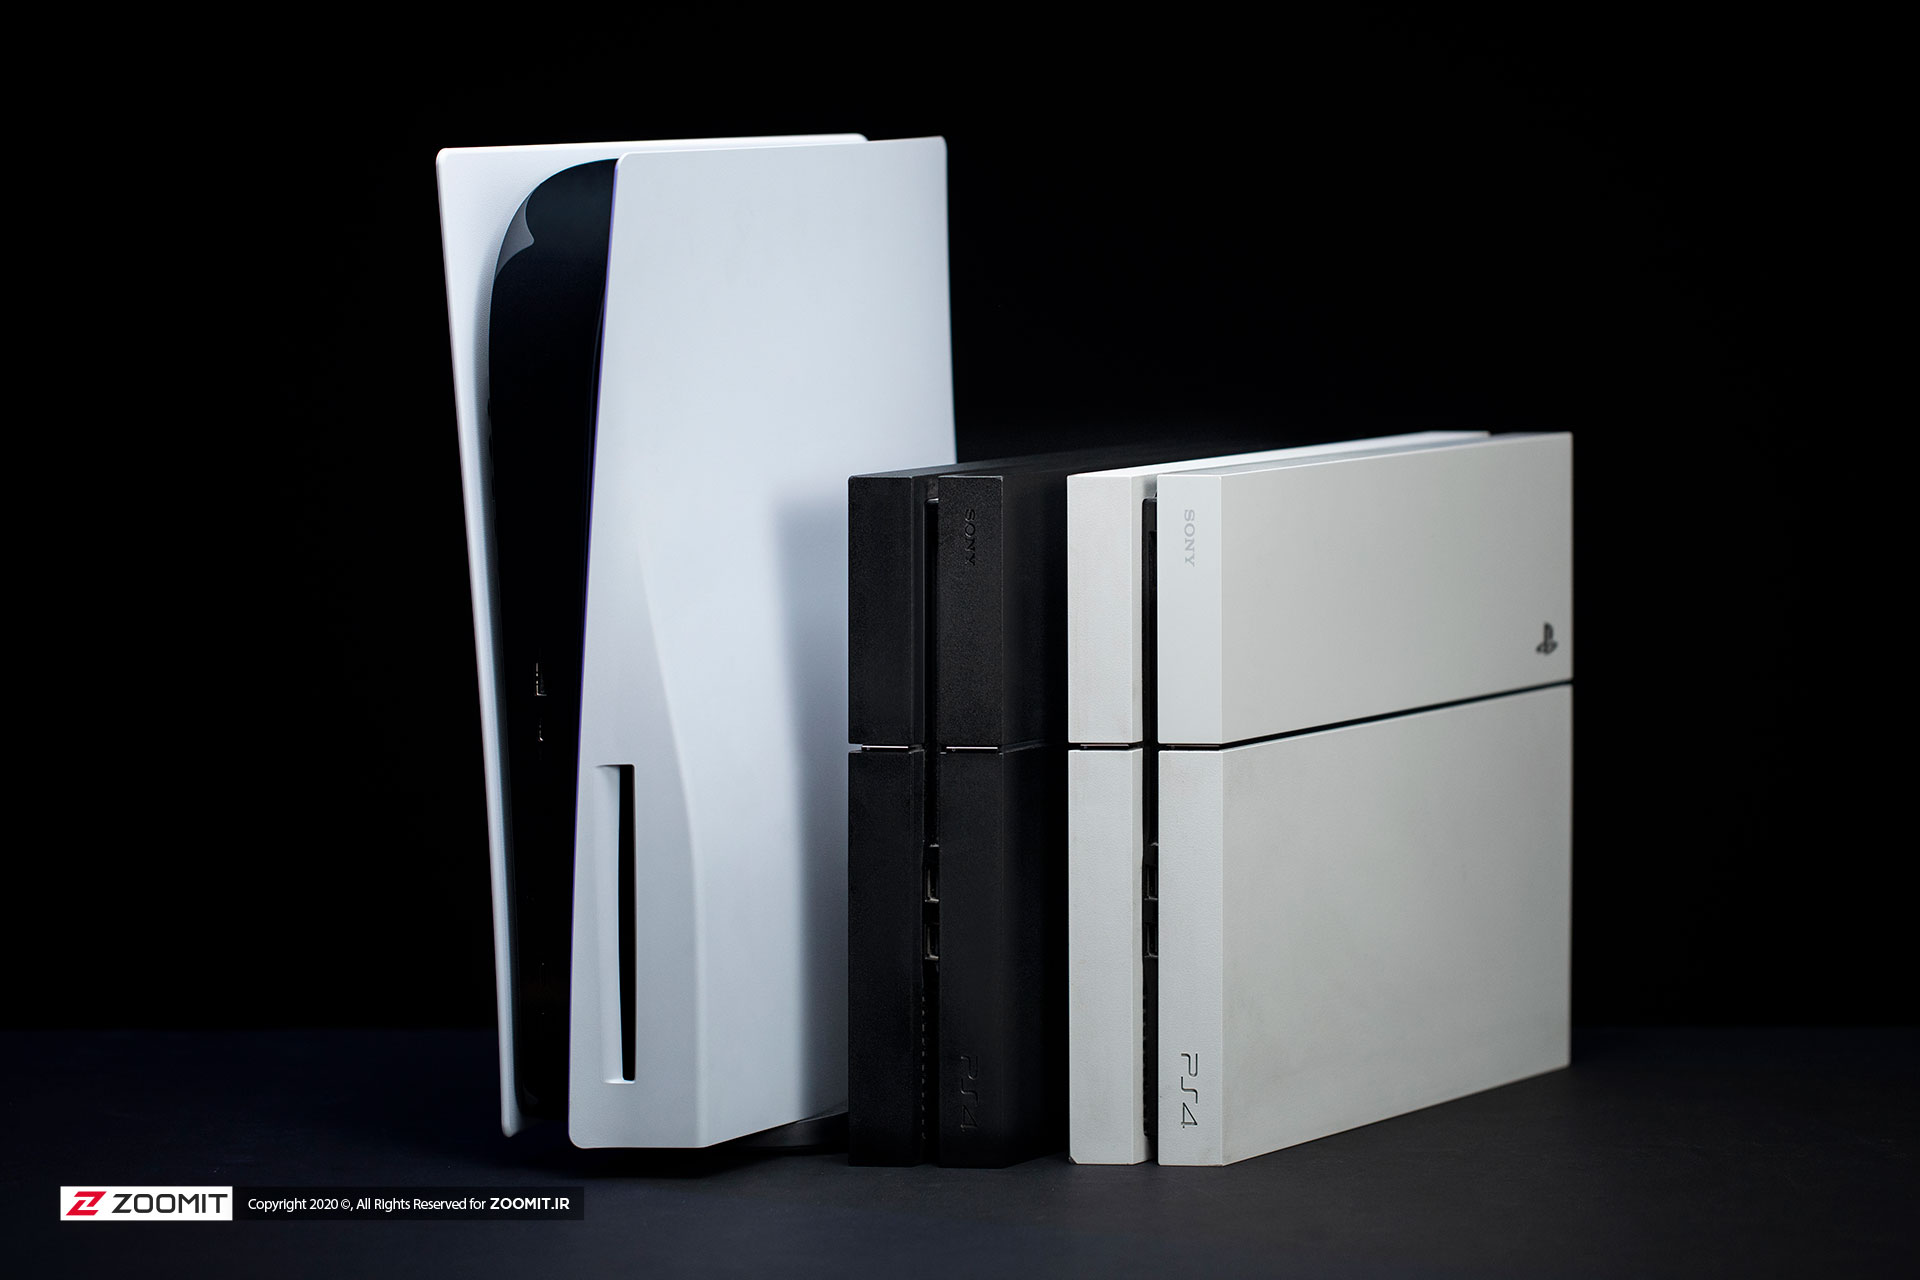 Compare PS5 with PS4